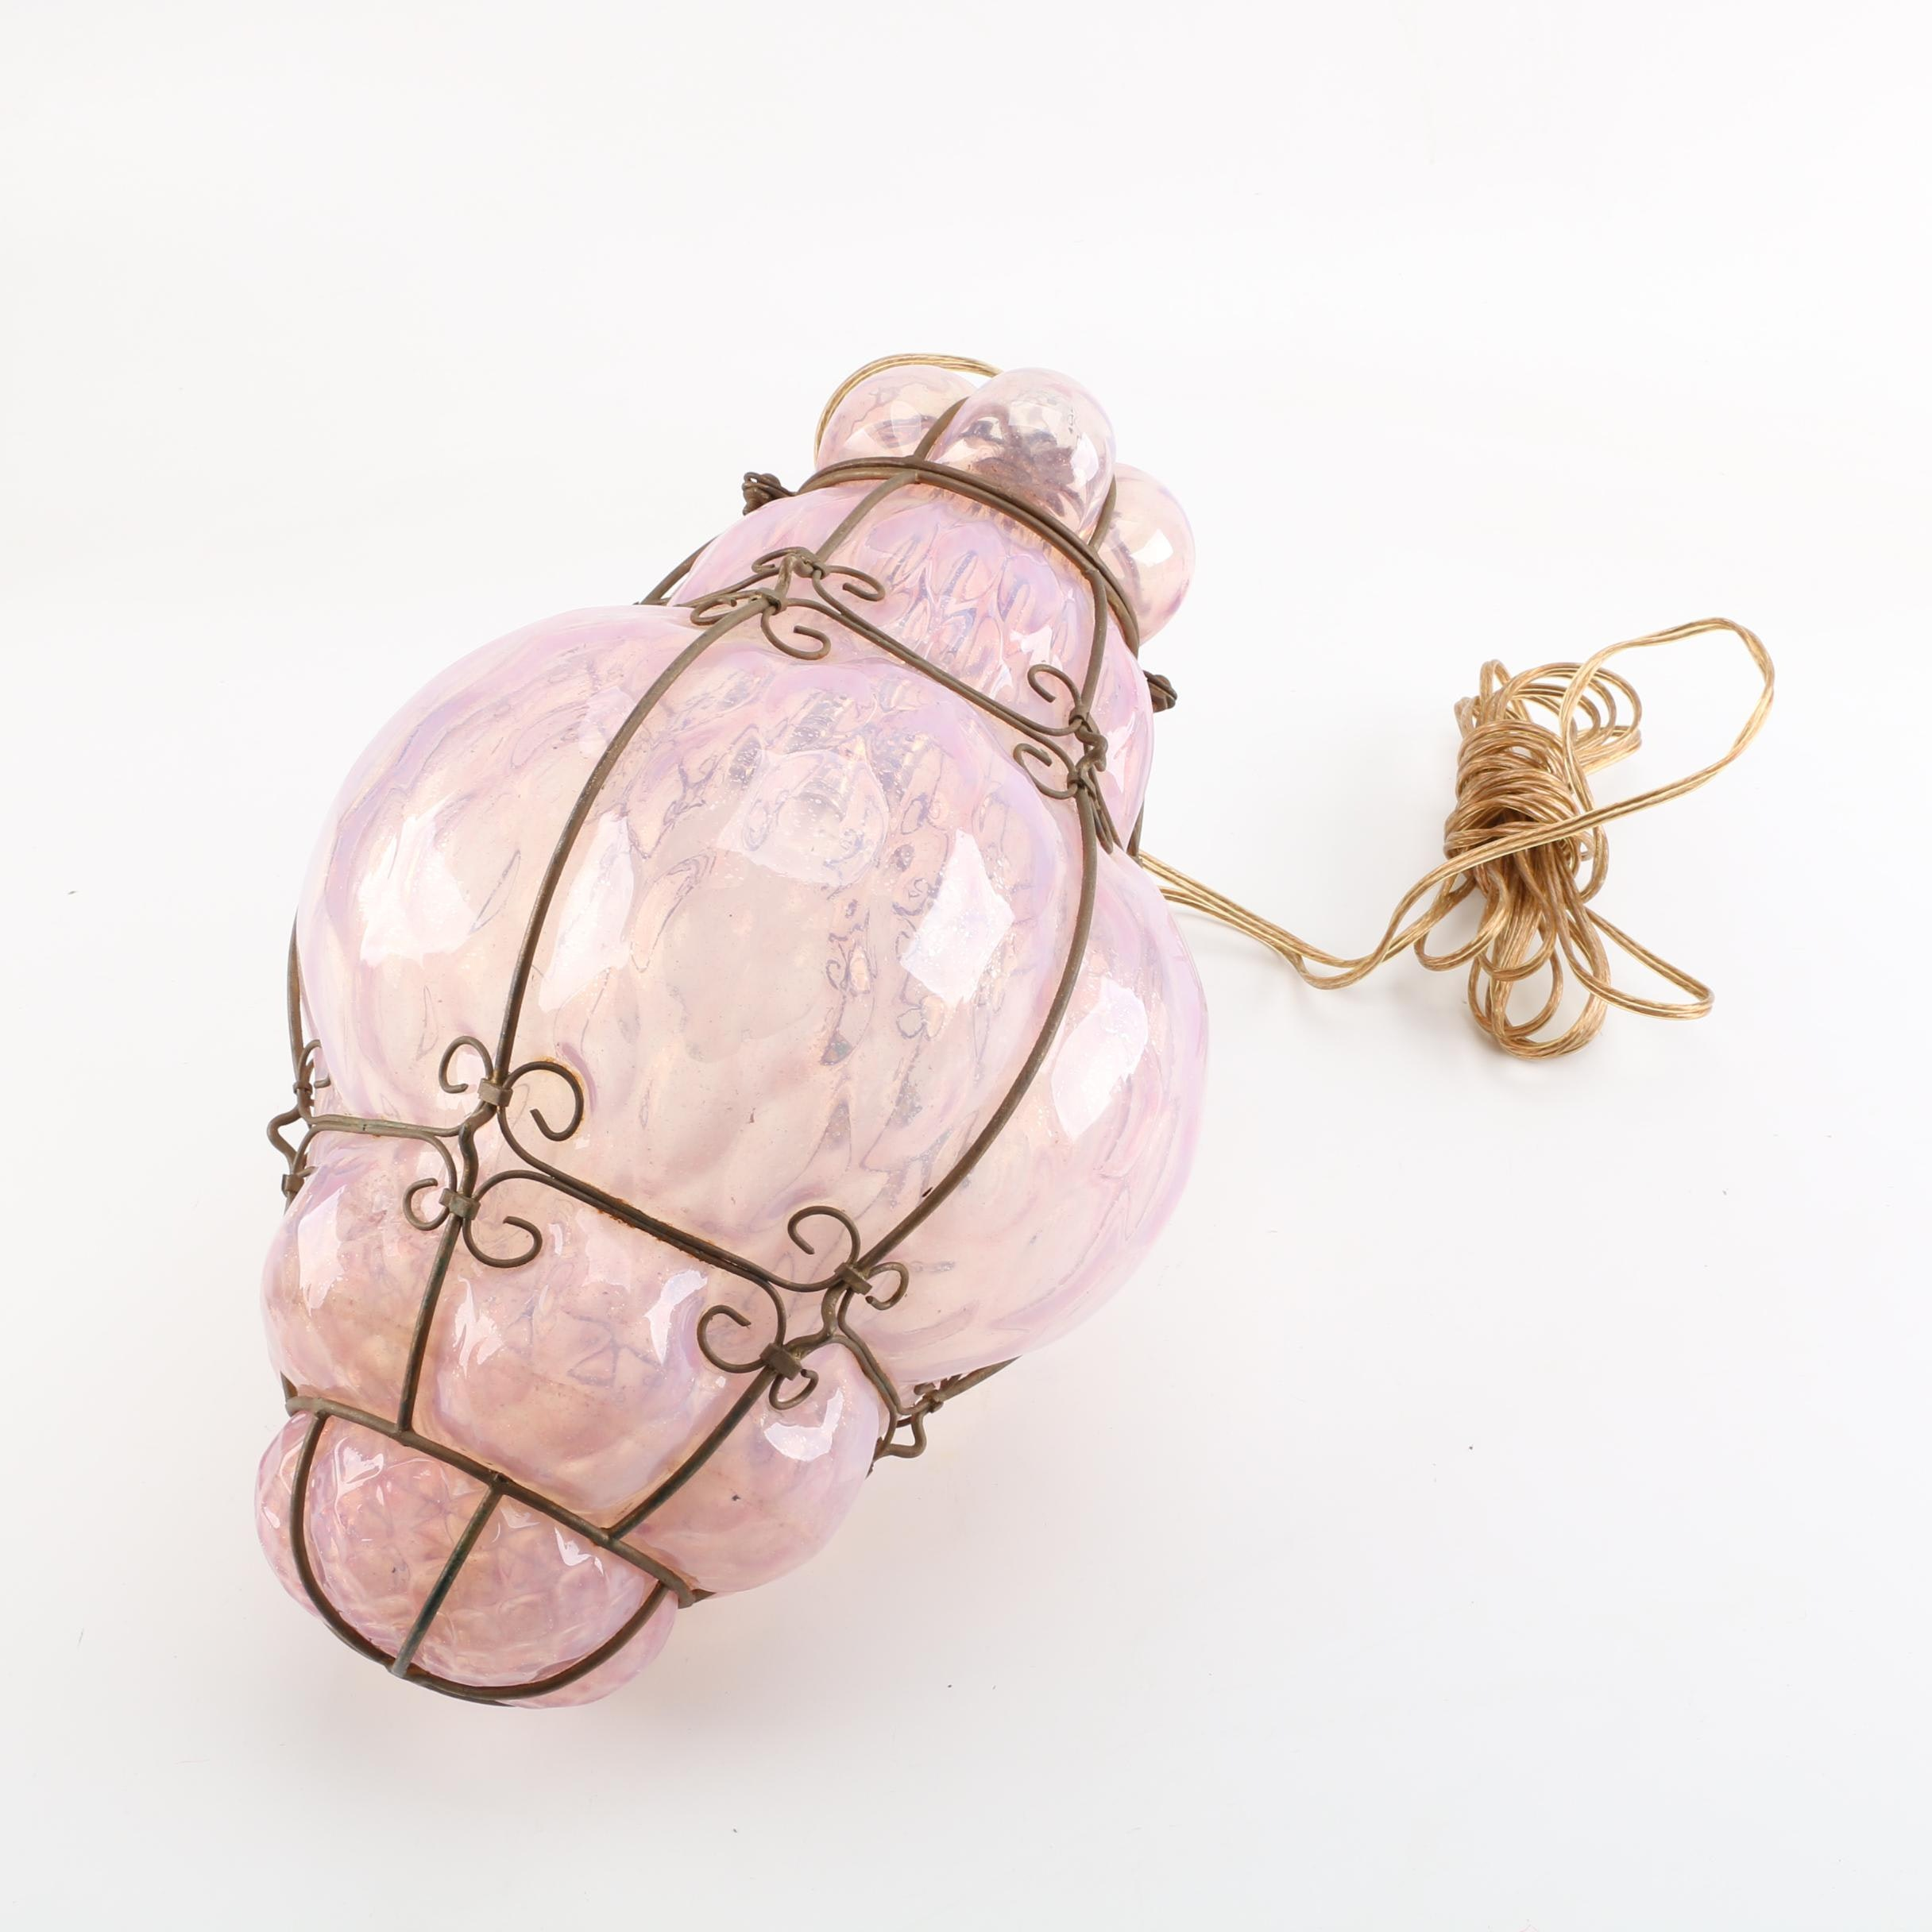 Iridescent Pink Blown Glass and Metal Pendant Light